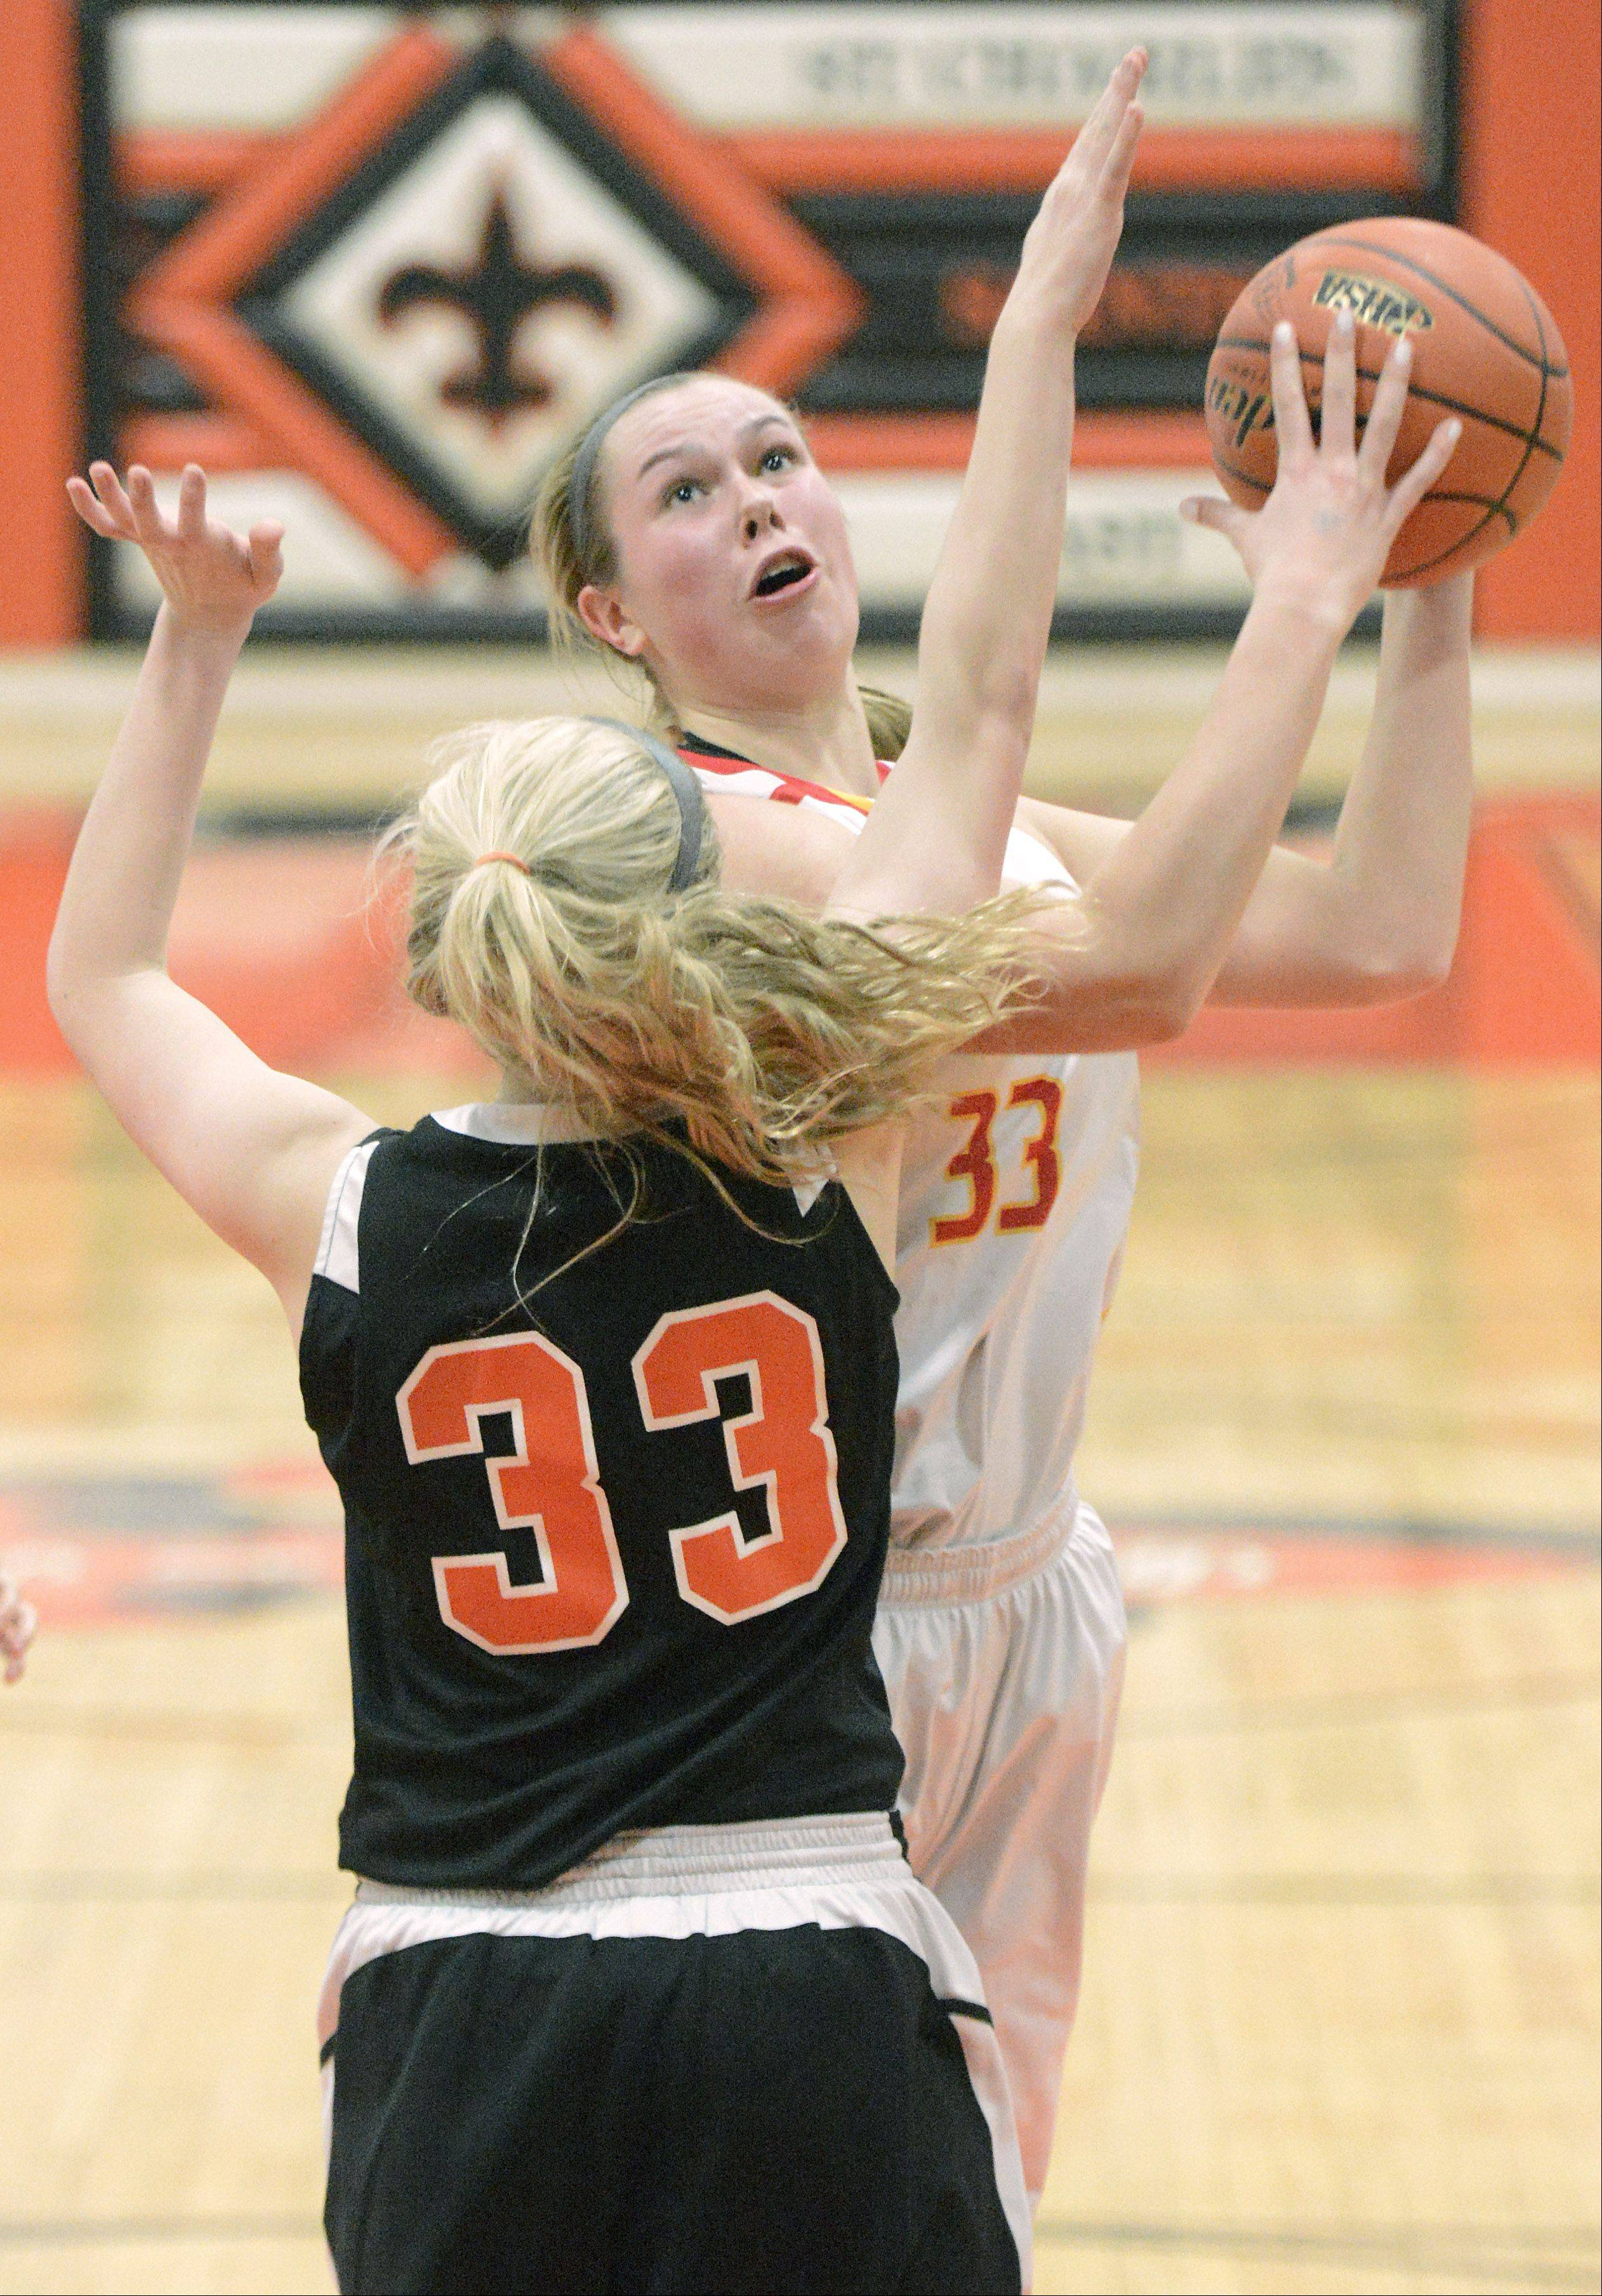 Laura Stoecker/lstoecker@dailyherald.comSt. Charles East's Hannah Nowling attempts to block a shot by Batavia's Erin Bayram in the third quarter of the 4A regional on Tuesday, February 12.